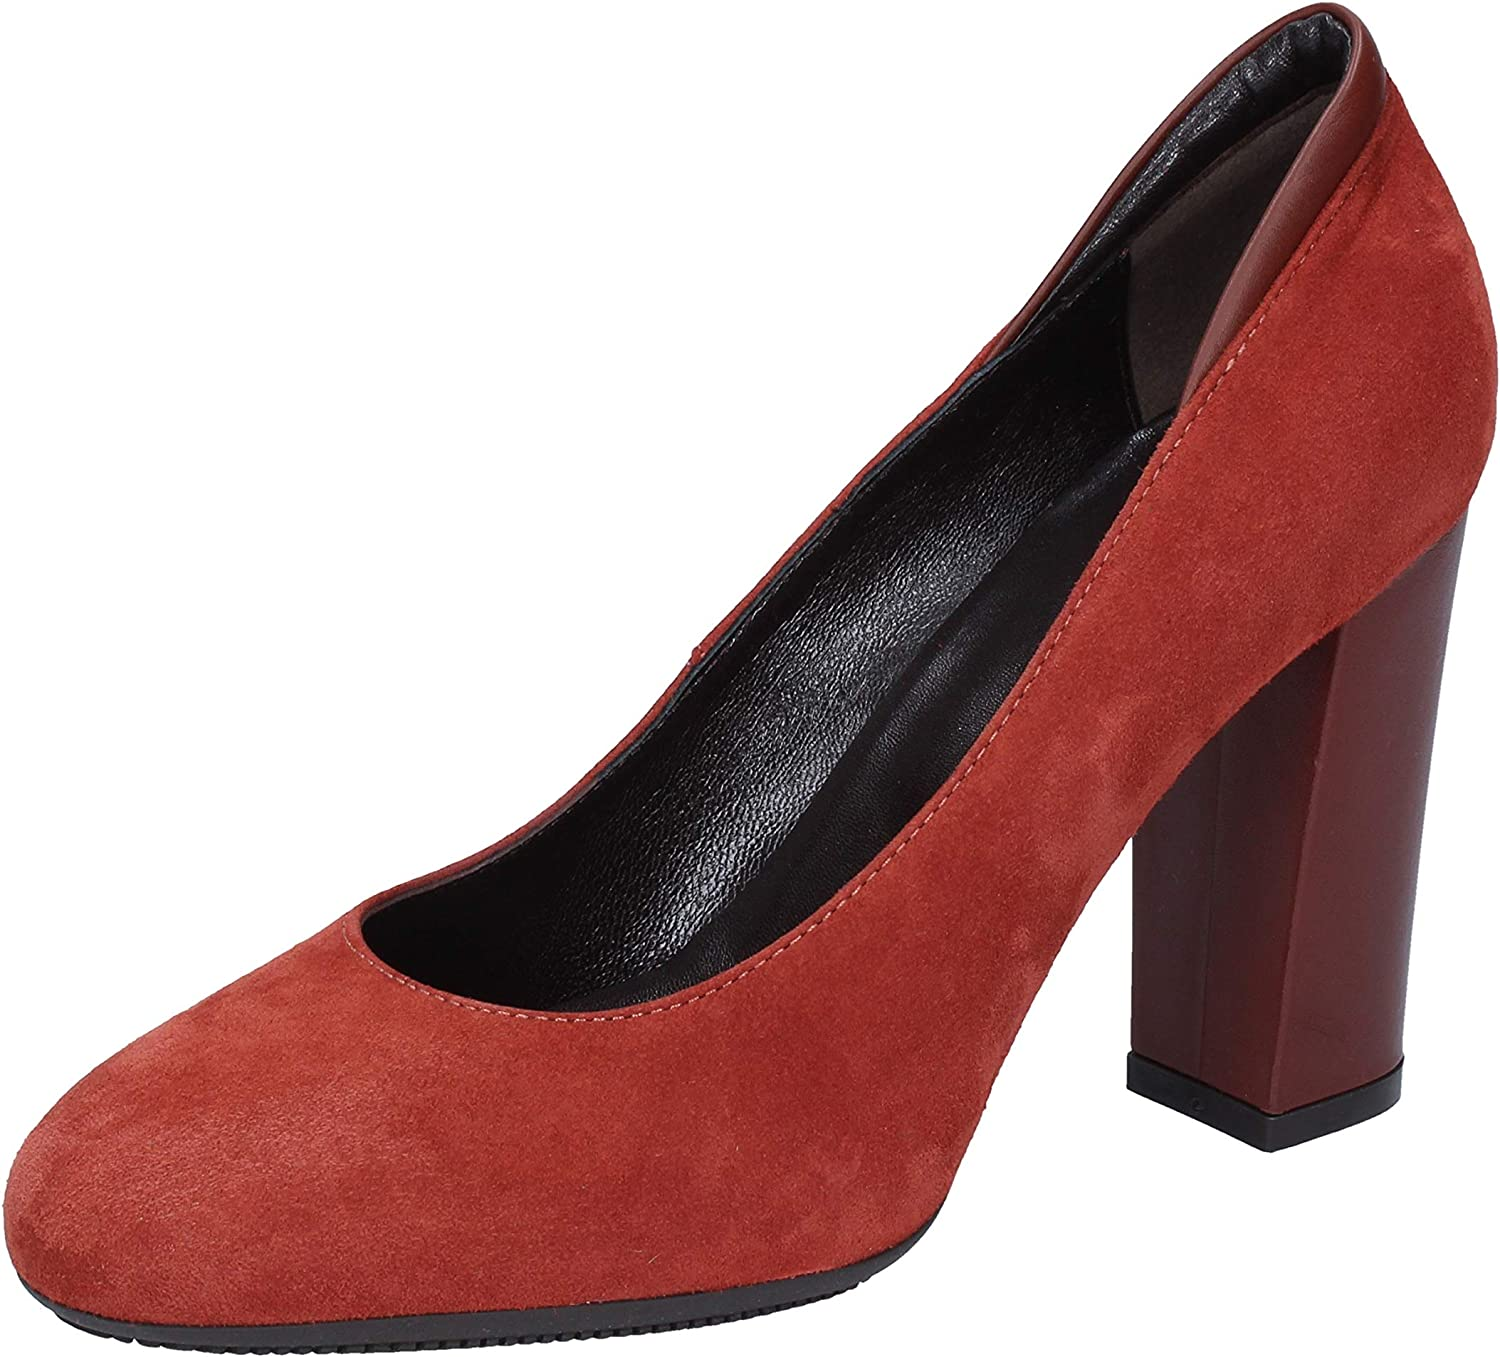 Hogan Pumps-shoes Womens Suede Red